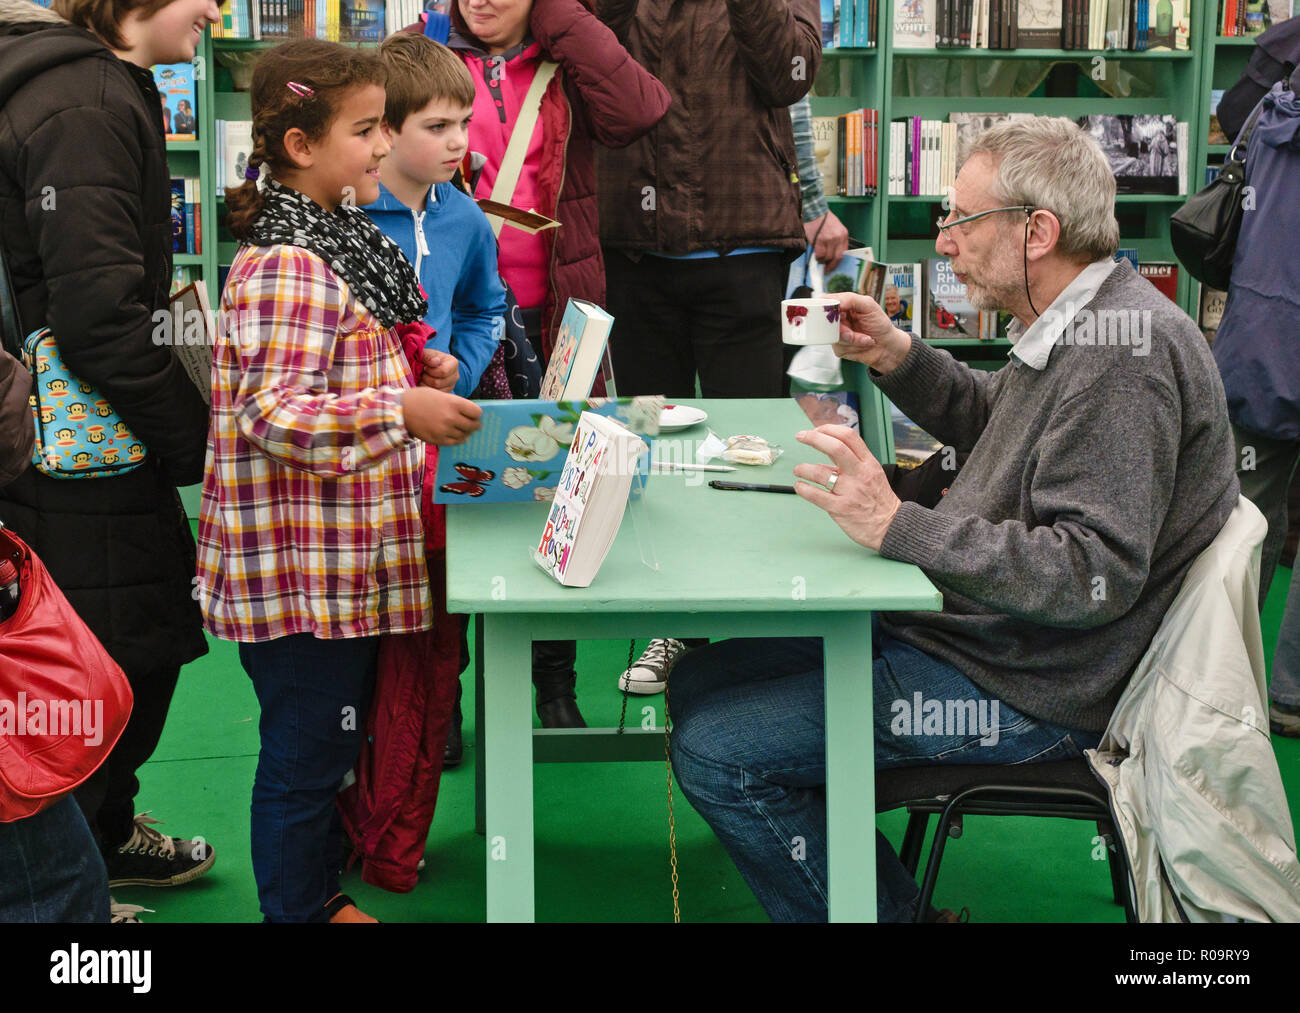 The children's author Michael Rosen signing books for young fans at the Hay Festival, Hay-on-Wye, Powys, UK - Stock Image